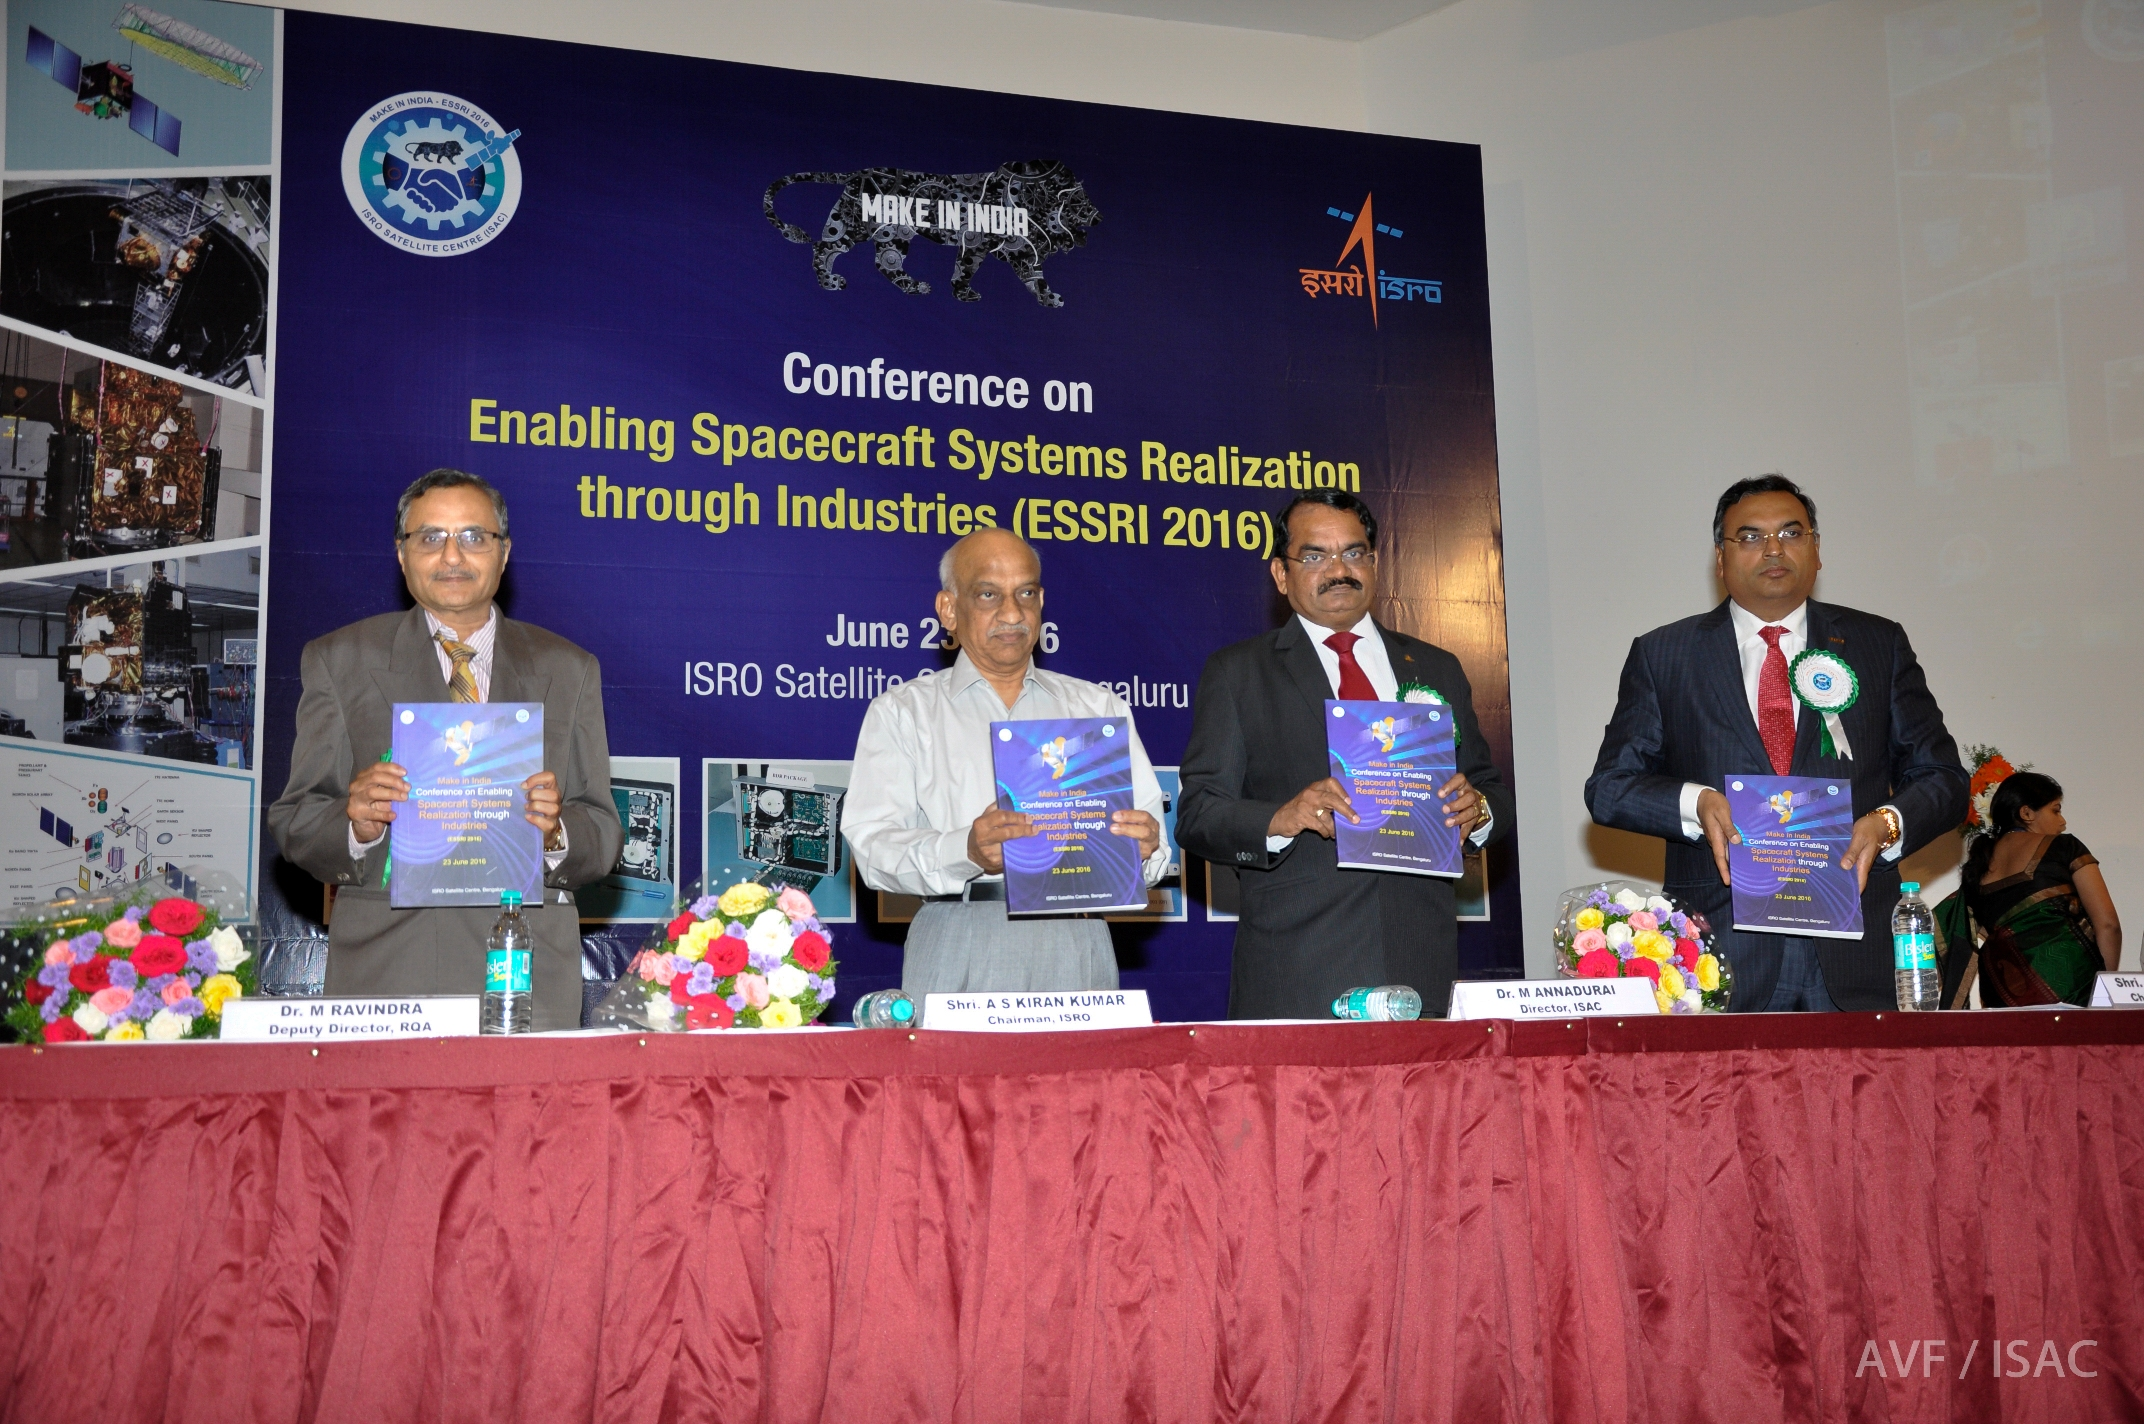 Conference On Enabling Spacecraft Systems Realization through Industries